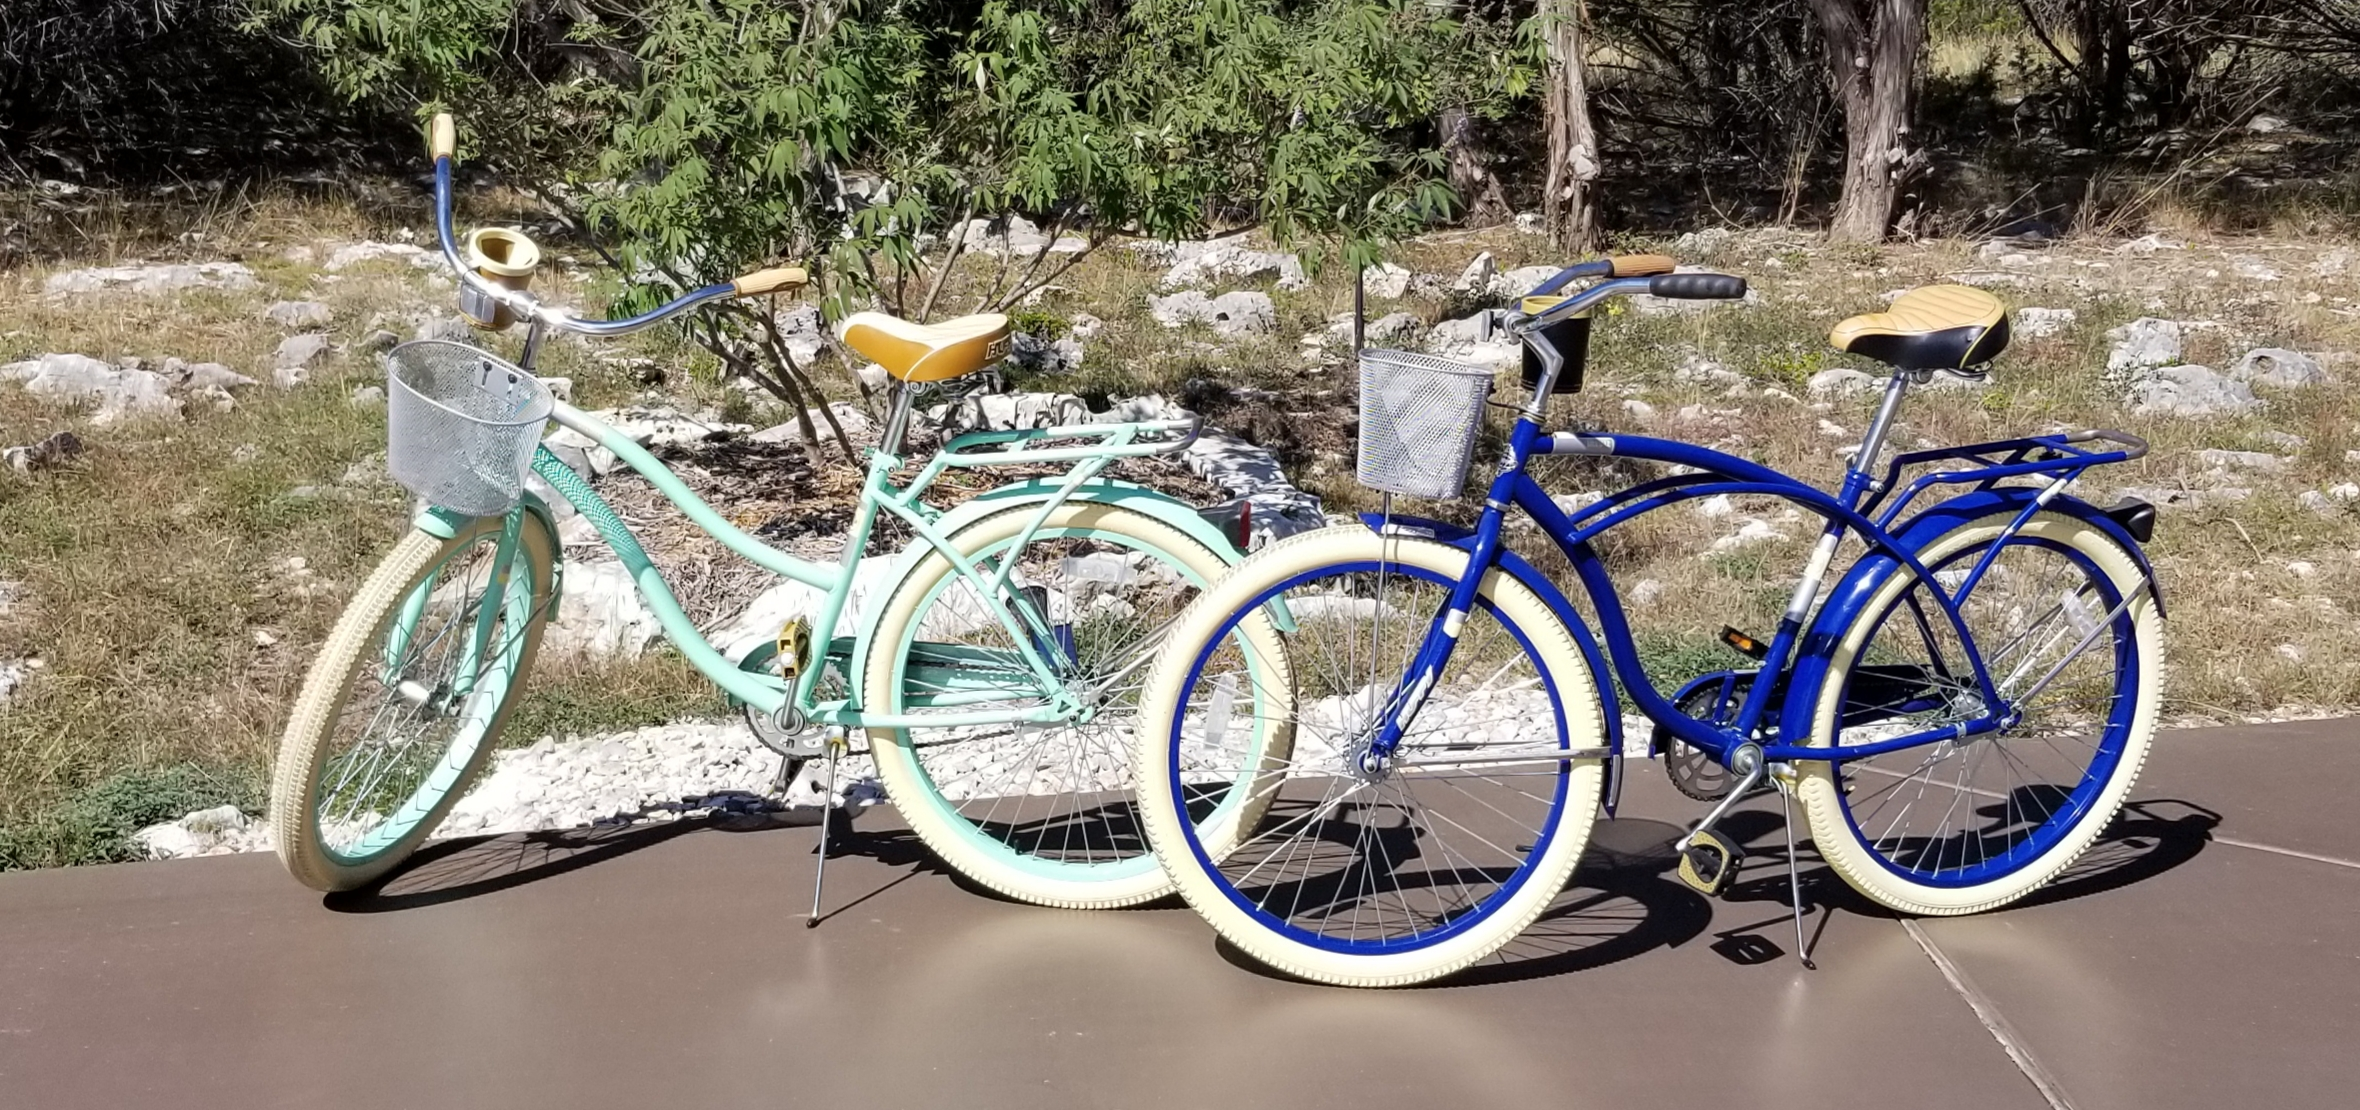 "Online Secret Auction: Pedal Pushers Delight: Huffy 26"" Deluxe Cruiser Bikes (like new) w/cupholders, front basket, and adjustable rear rack. Men's (dark blue), Women's (Mint Green)"